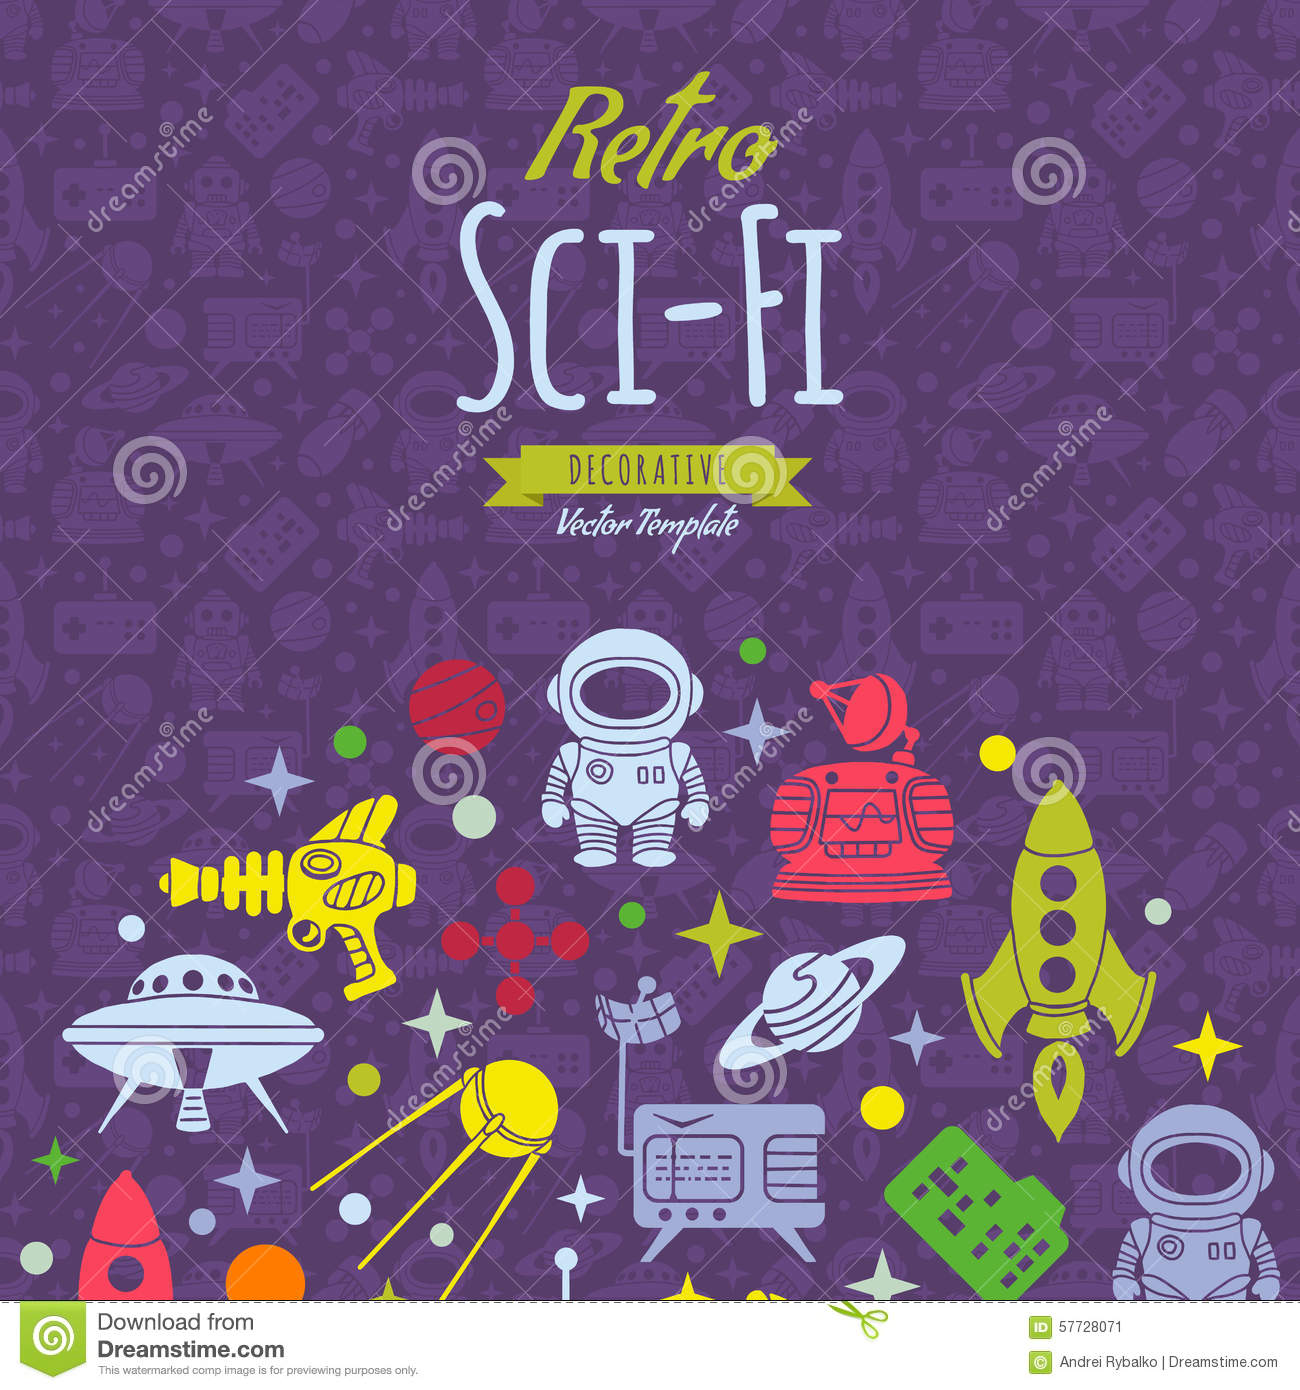 Retro sci fi vector decorating design vector illustration for Sci fi decor